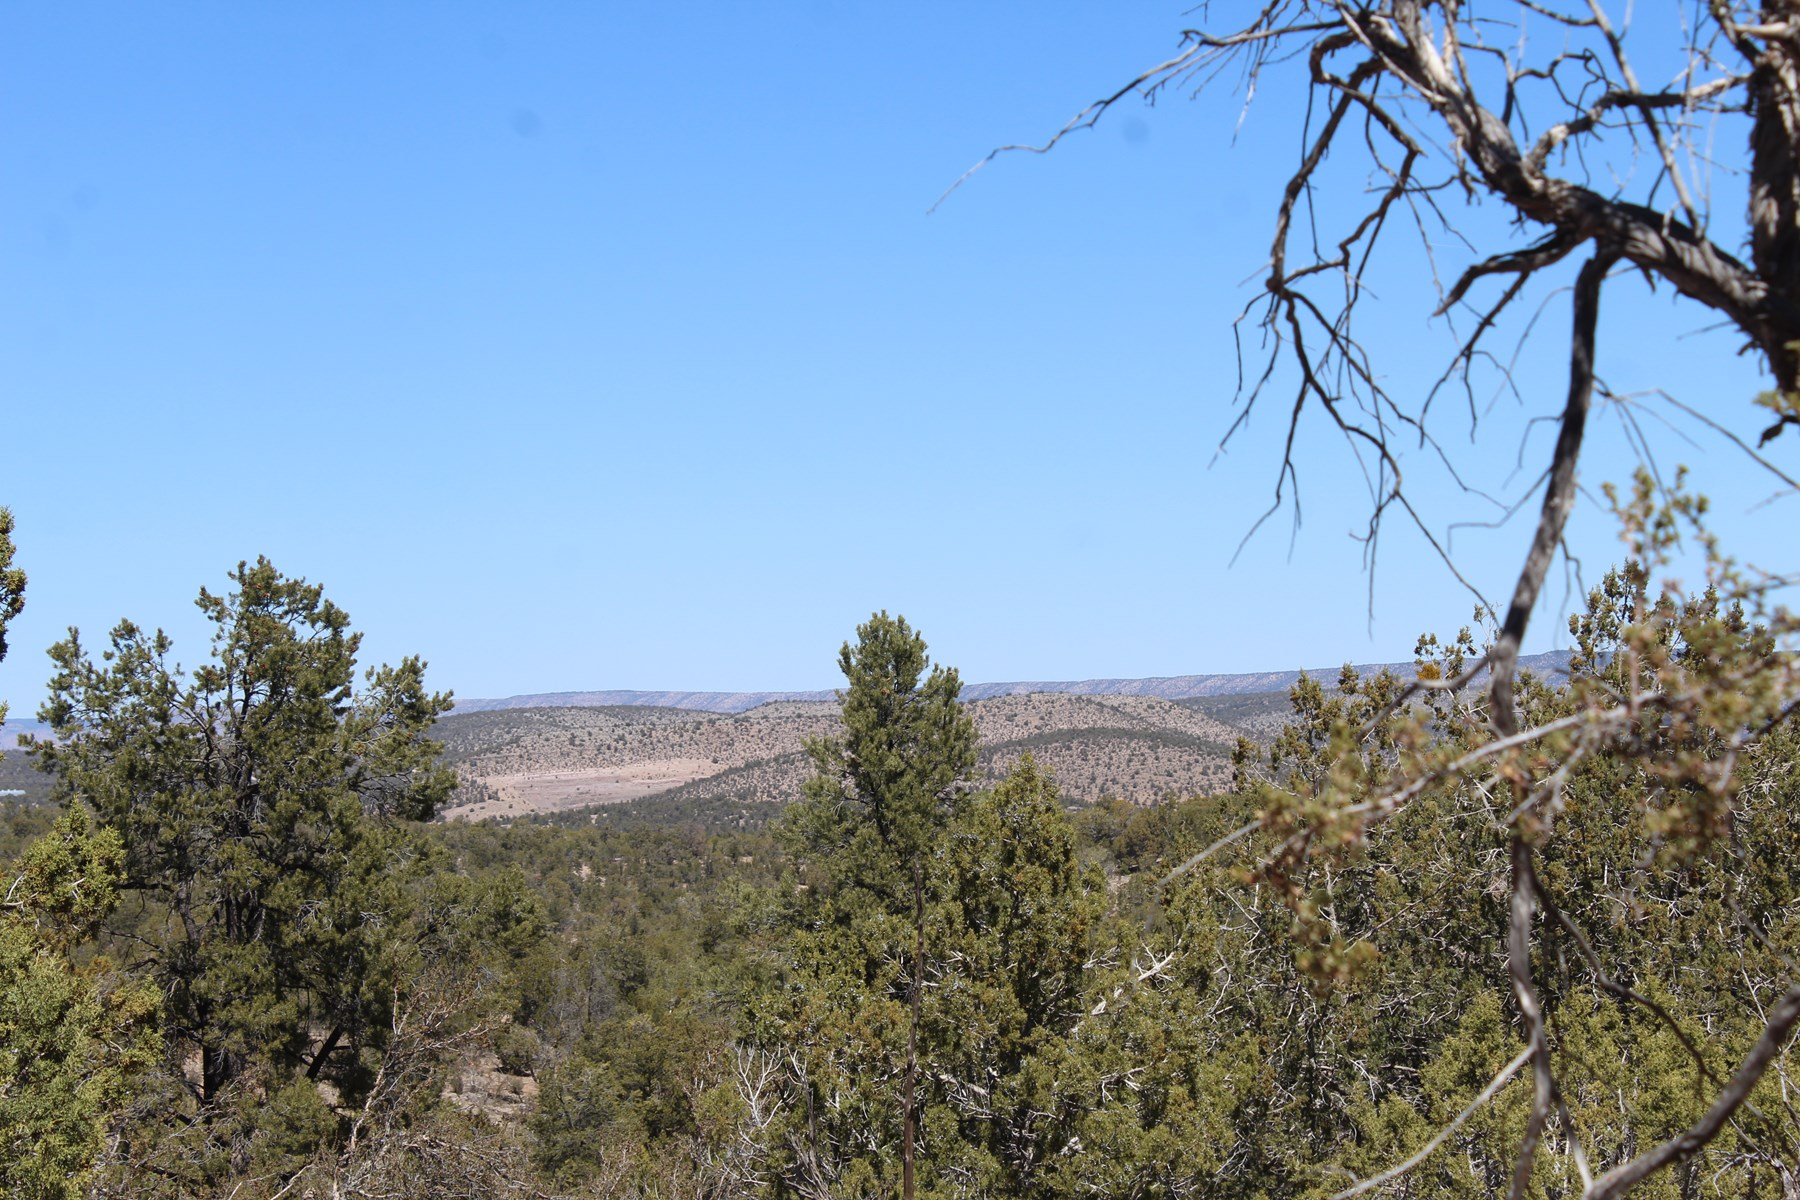 Over 40 Acres - Prime Mountain and Hunting Area